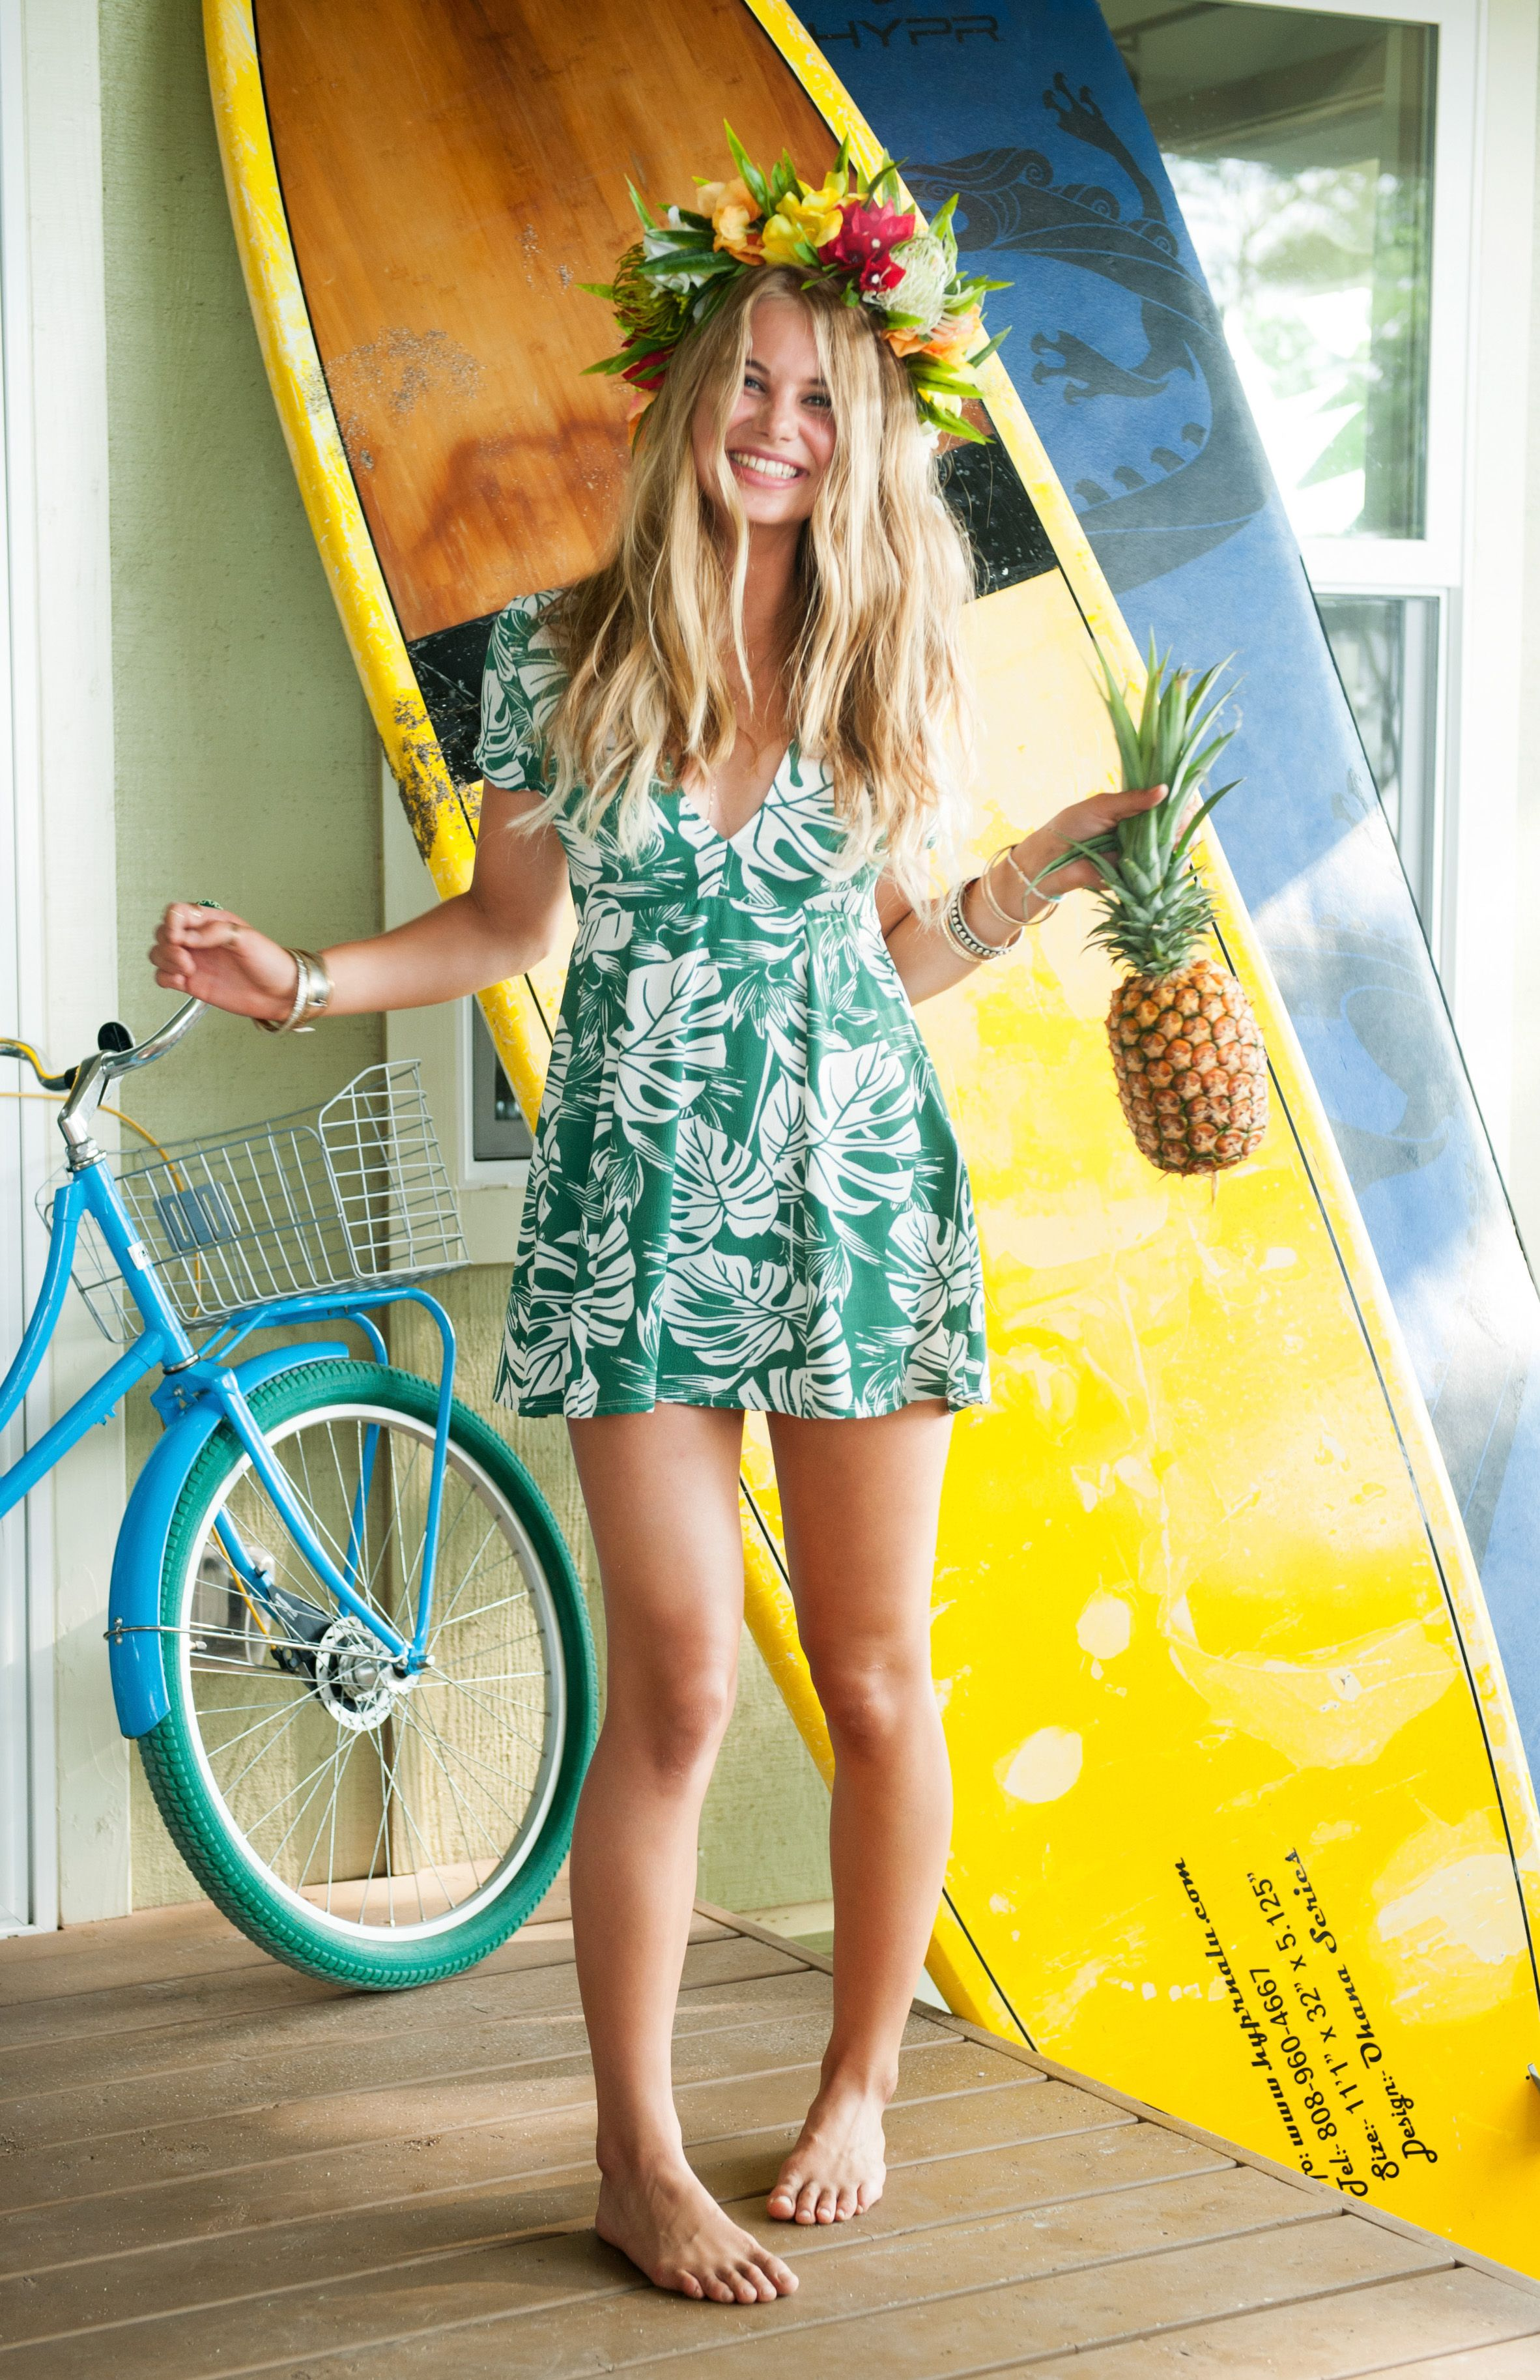 de543852afa Nothing beats summer at the beach in Show Me Your Mumu! Spruce up your  summer wardrobe and shop your fave looks in store or online!